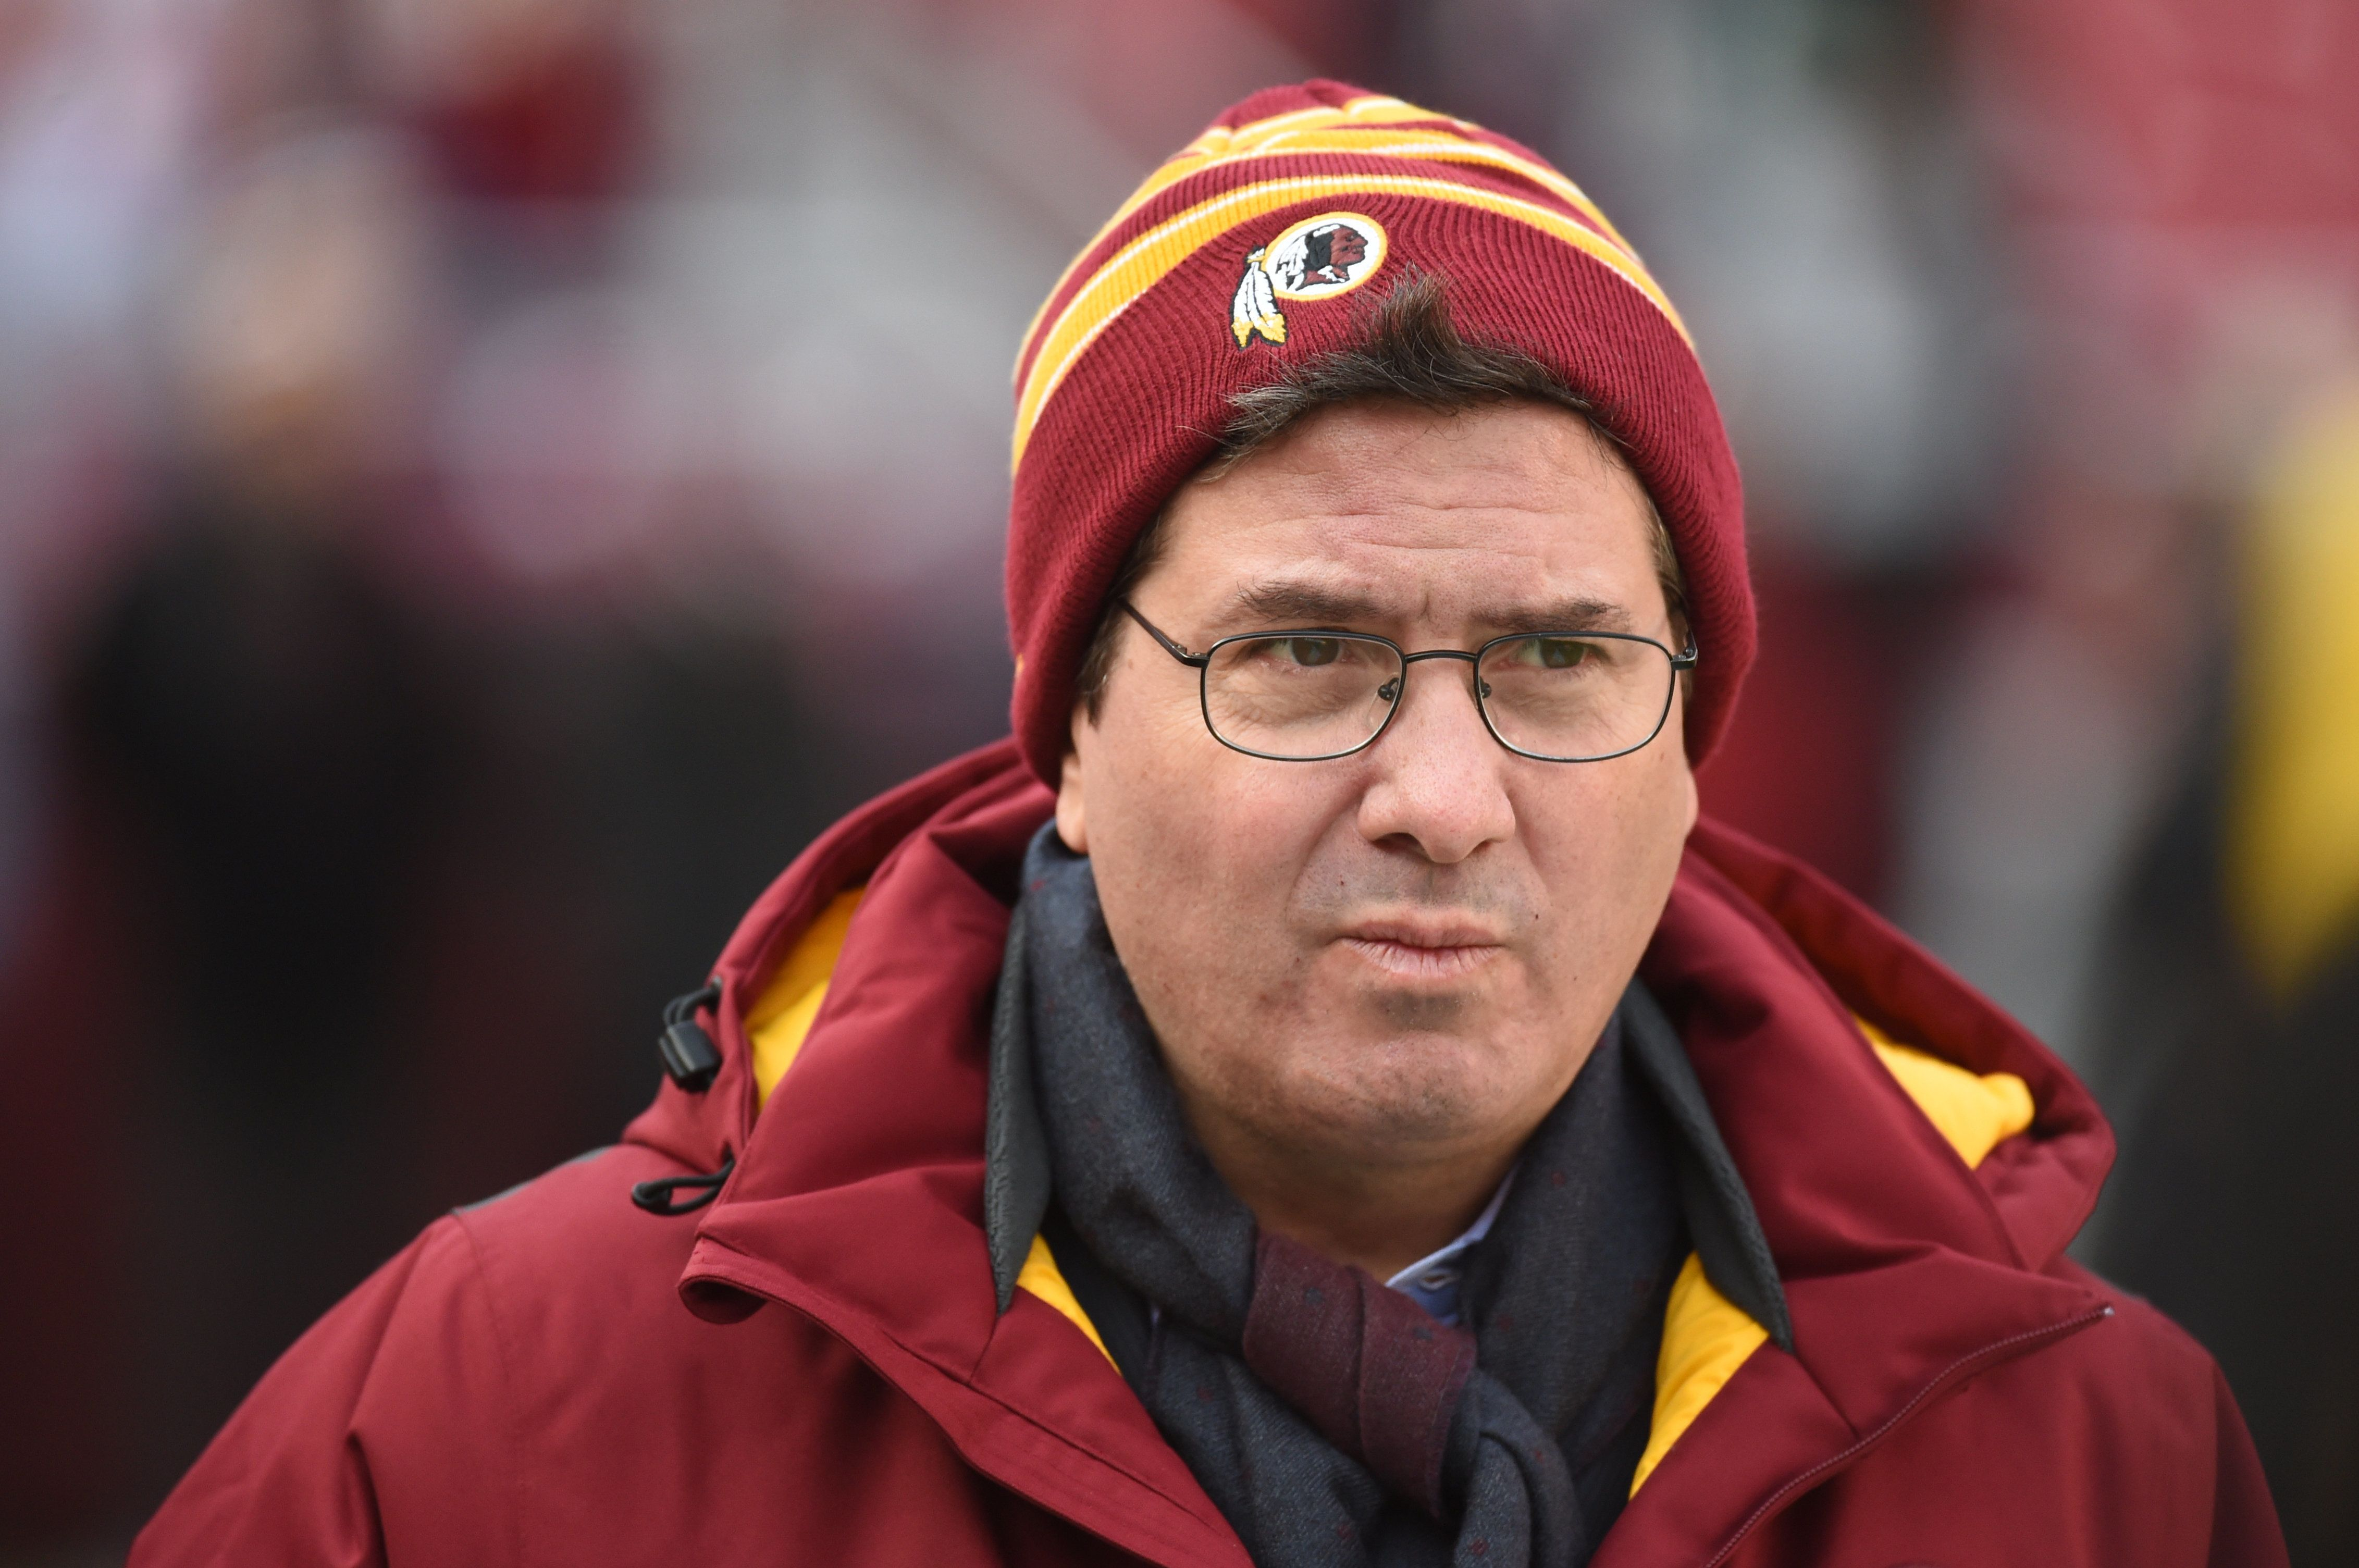 LANDOVER, MD - DECEMBER, 20:  Washington Redskins owner Dan Snyder walks the field prior to action against the Philadelphia Eagles on December 20, 2014 in Landover, MD. (Photo by Jonathan Newton / The Washington Post via Getty Images)